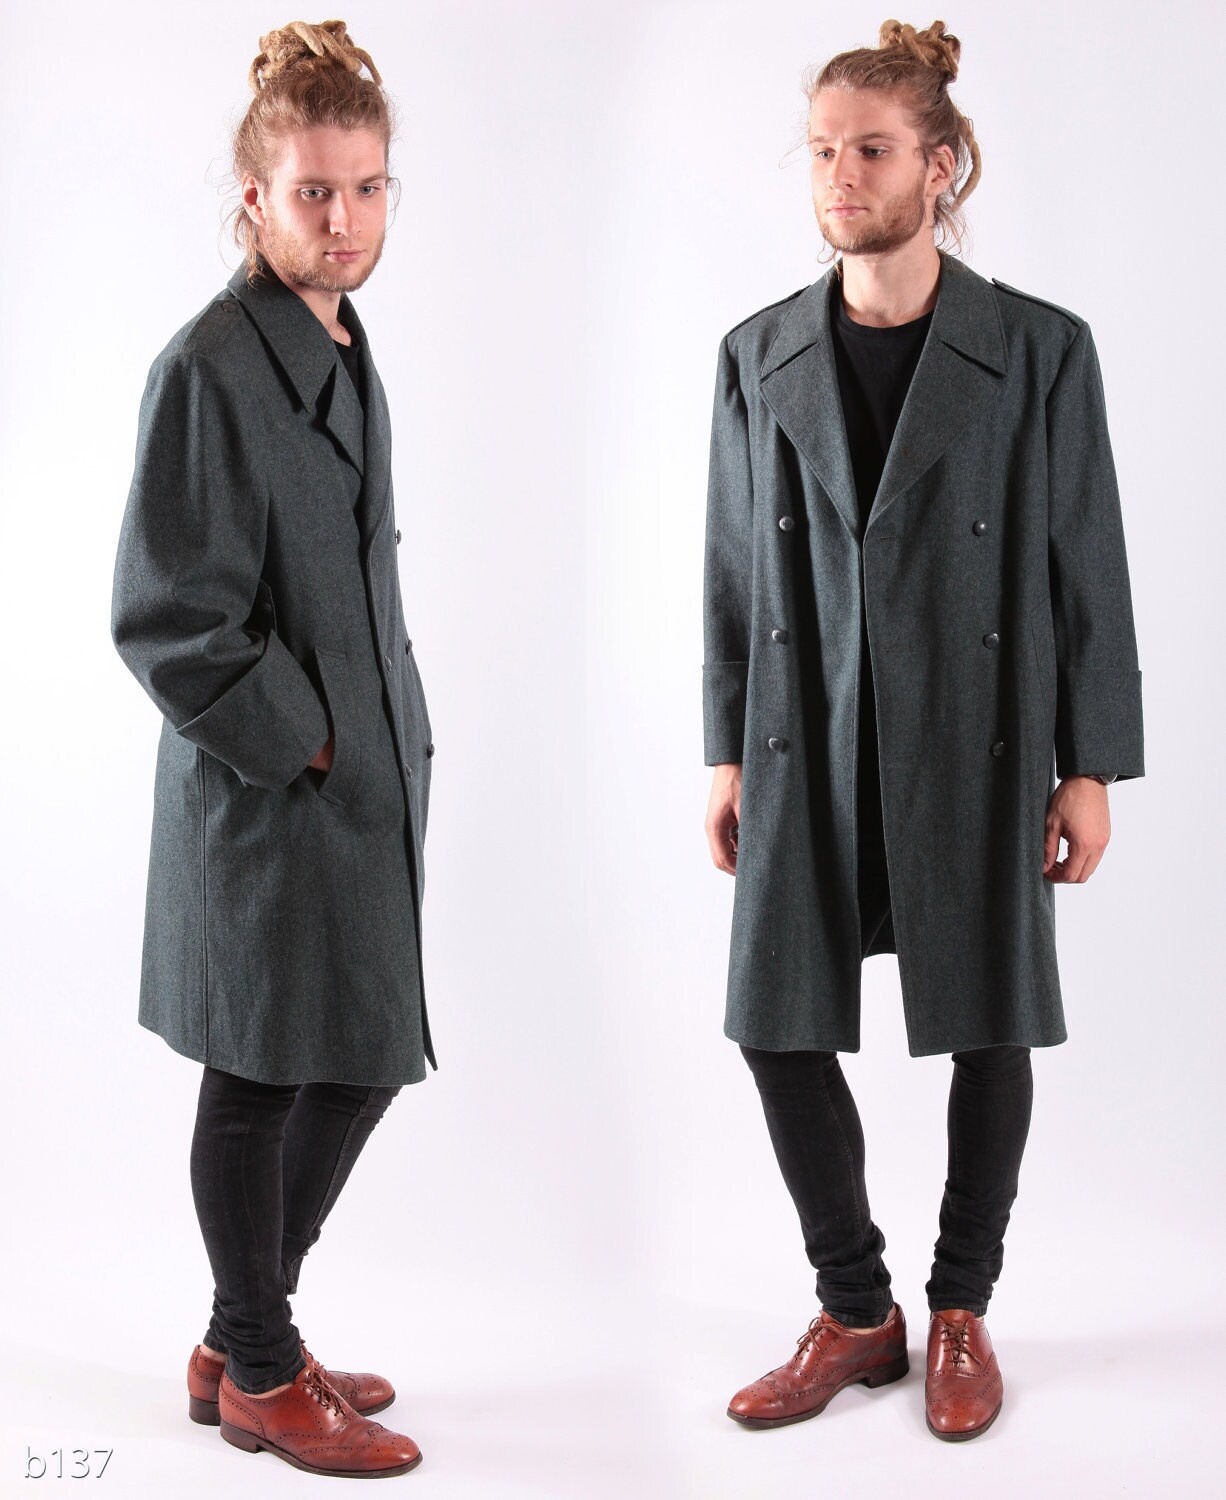 Mens ARMY Coat . Vintage 1960s GREATCOAT Army by BetaMenswear